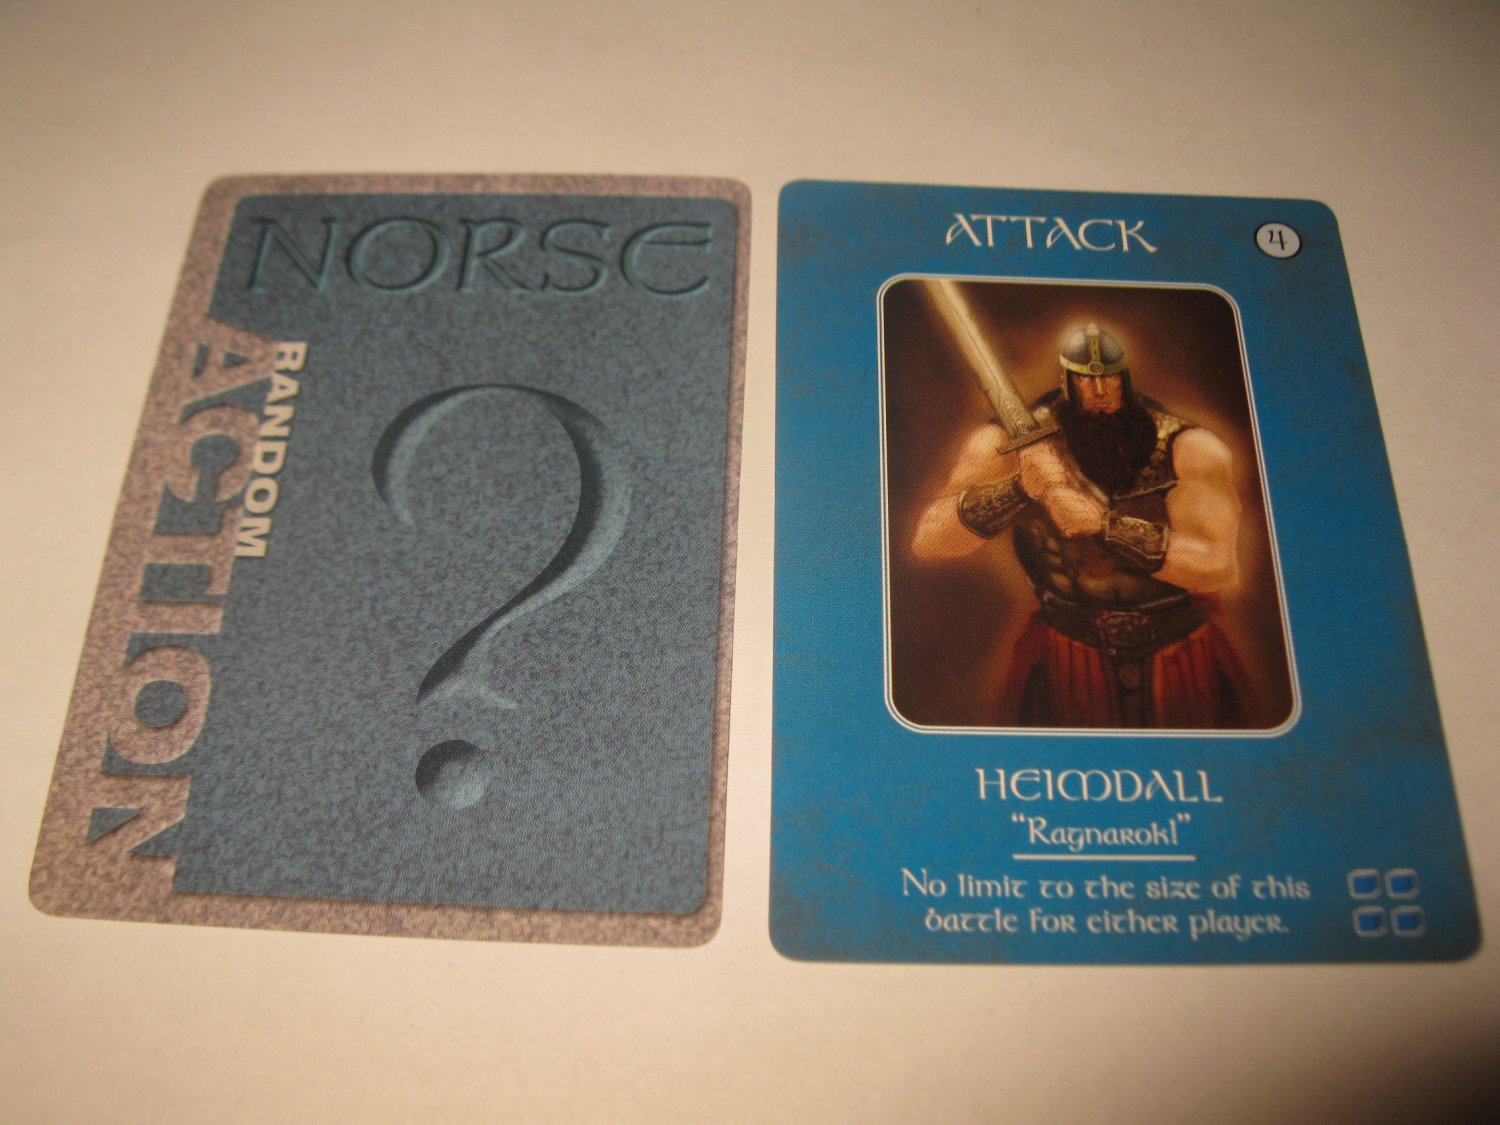 2003 Age of Mythology Board Game Piece: Norse Random Card: Attack - Heimdall